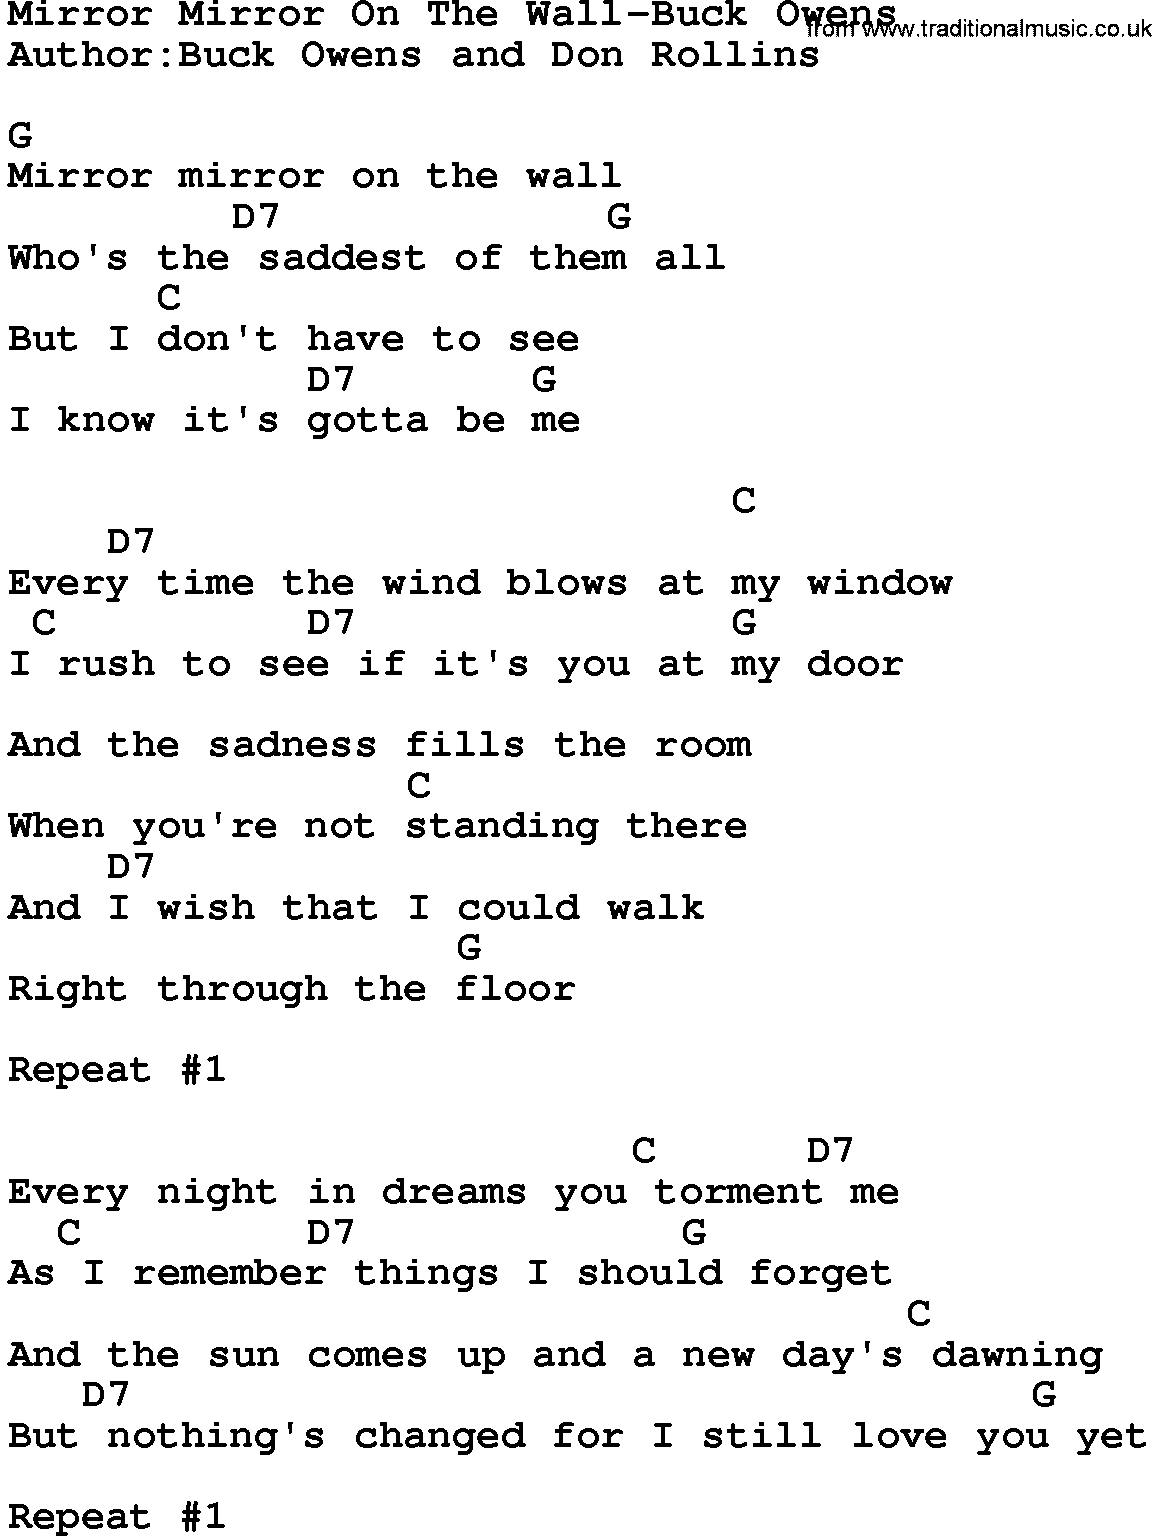 country music mirror mirror on the wall buck owens lyrics